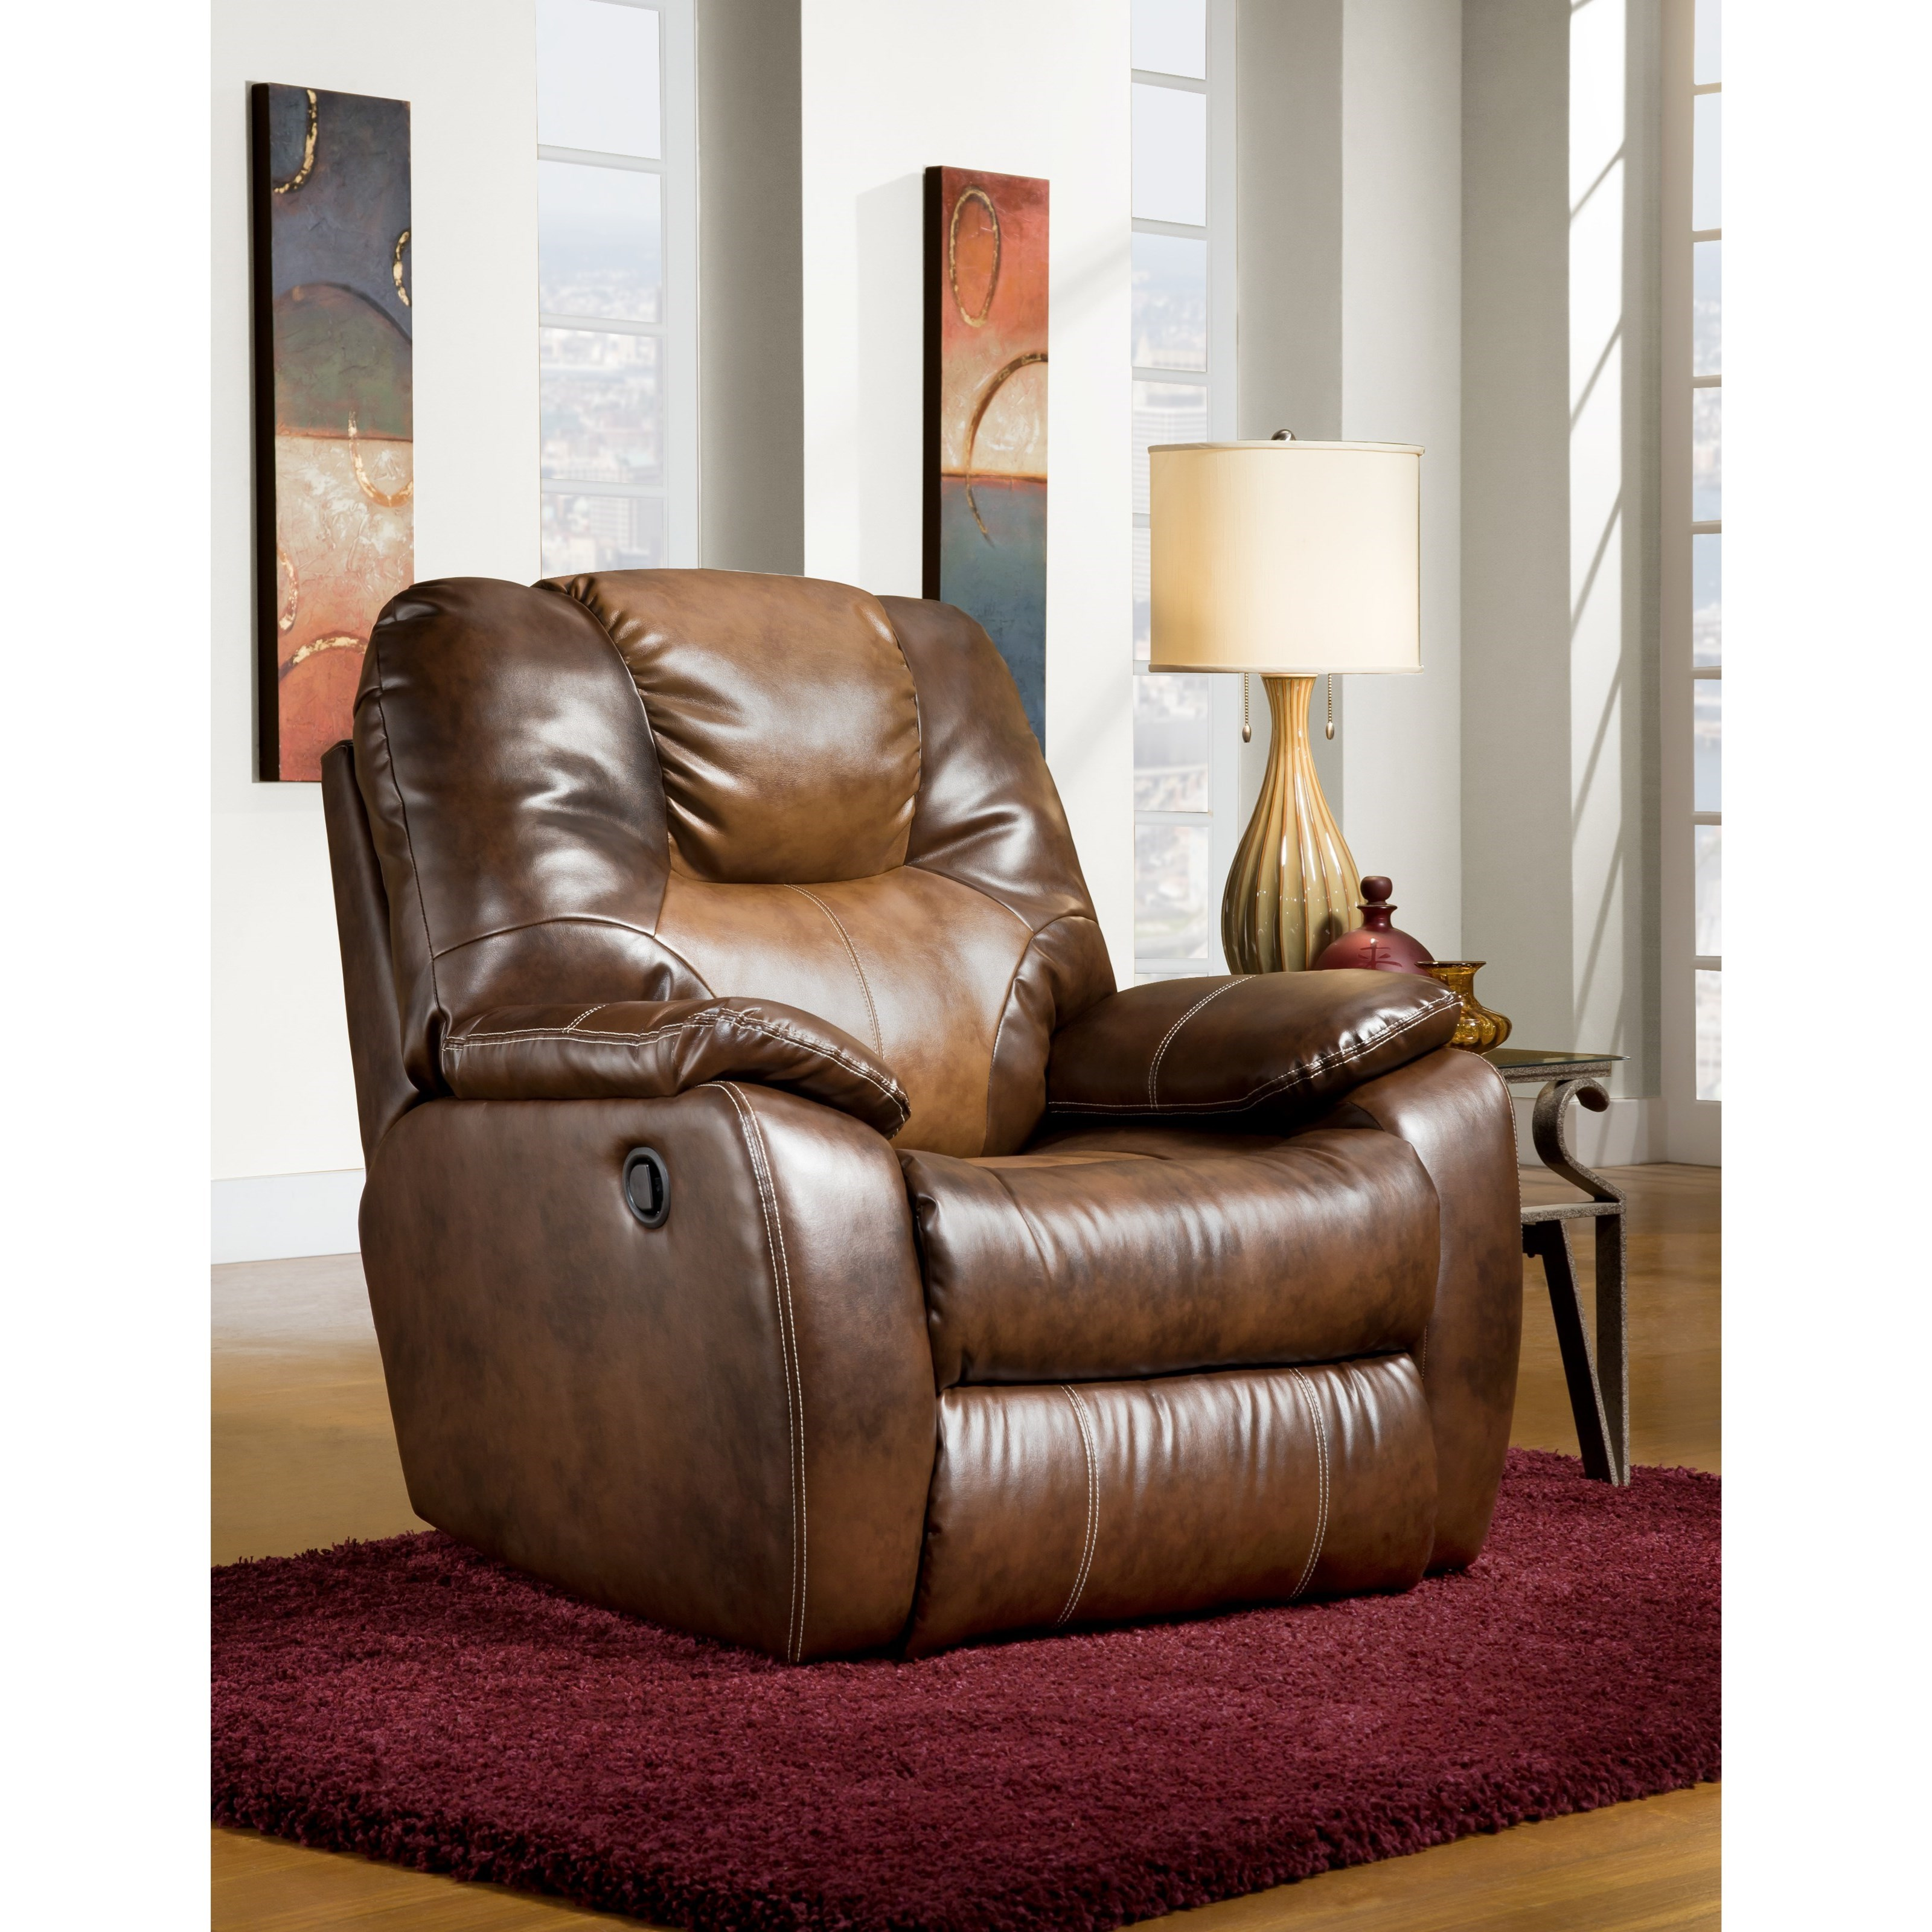 Avalon Power Plus Wallhugger Recliner by Southern Motion at Rooms and Rest